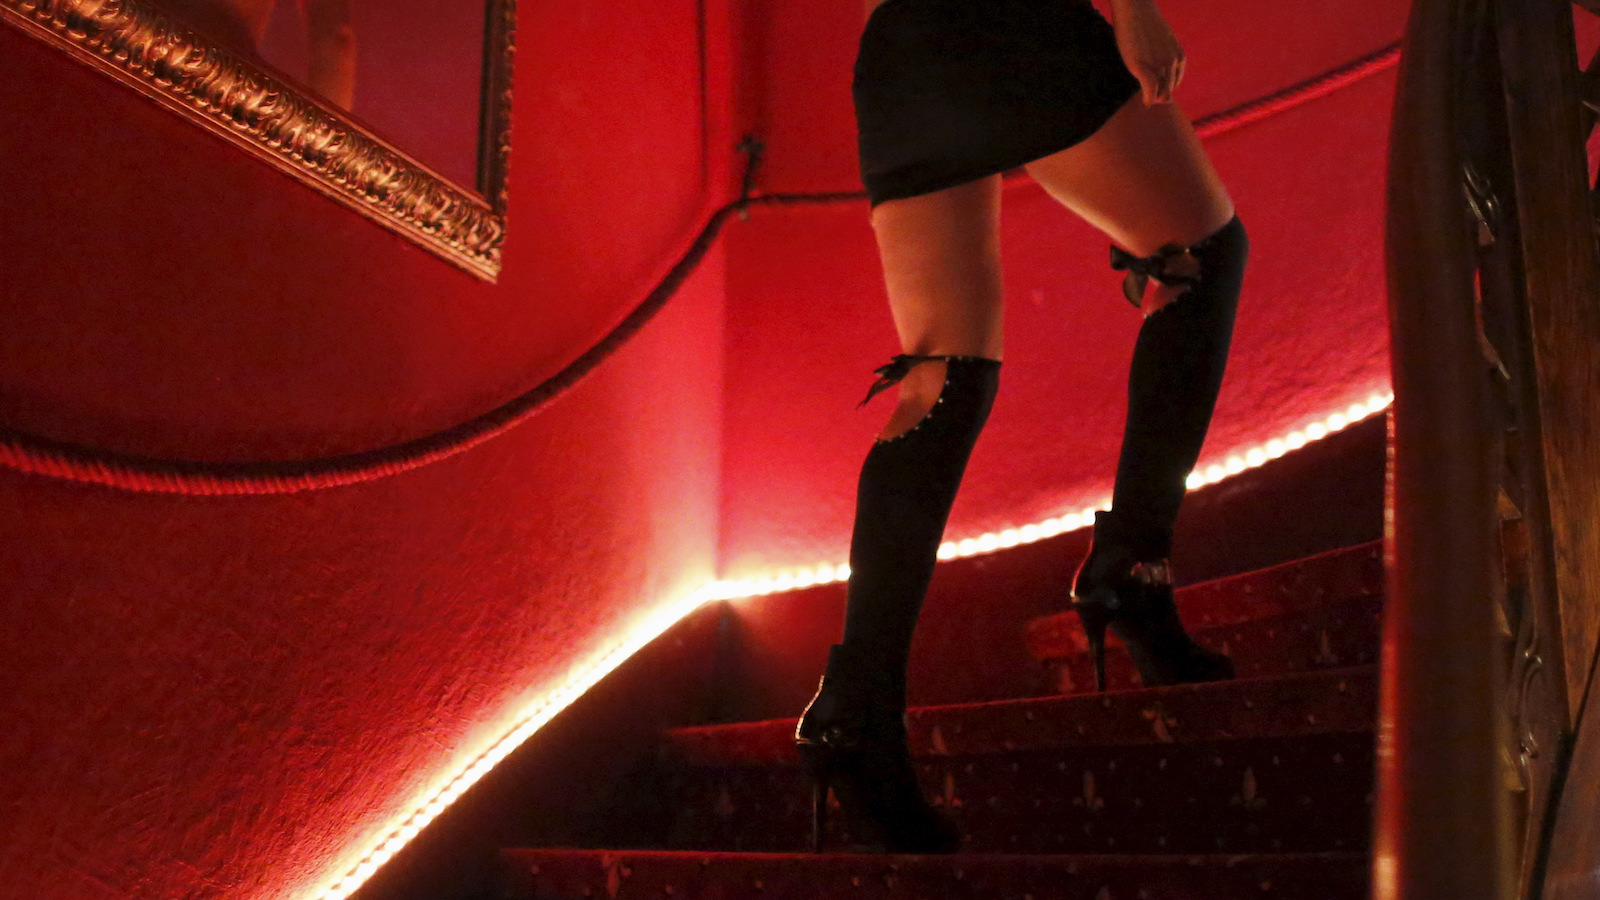 """A woman walks up the stairs in Pascha nightclub in Salzburg, Austria, June 16, 2015. The nightclub is offering customers free sex in a summer-long protest over what its owner sees as punitive tax payments. """"We are not paying taxes any more. Effective immediately: Free Entrance! Free Drinks! Free Sex!"""" the Pascha establishment in Salzburg posted on its website. Owner Hermann """"Pascha"""" Mueller told Reuters he would compensate from his own pocket money that prostitutes working at the club will forego. Picture taken June 16, 2015.   REUTERS/Leonhard Foeger - RTX1GVTC"""